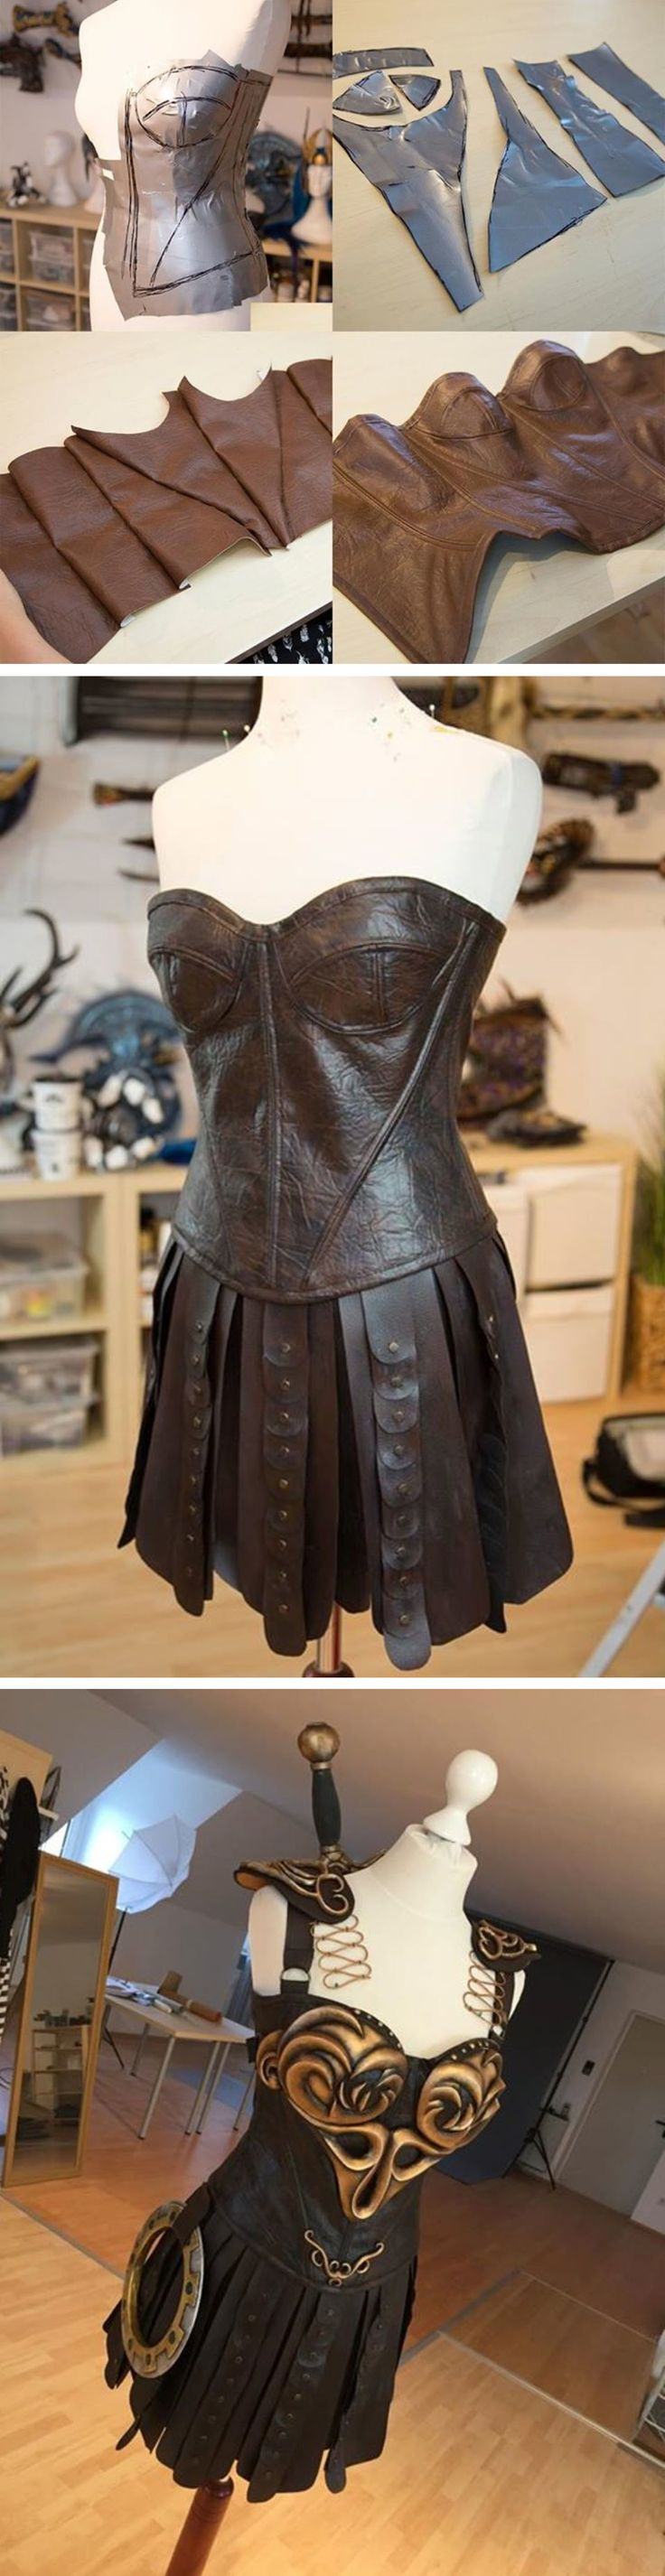 Learn How You Can Make the Ultimate Xena Costume- I dont know who Xena is, but I bet this tutorial will come in handy